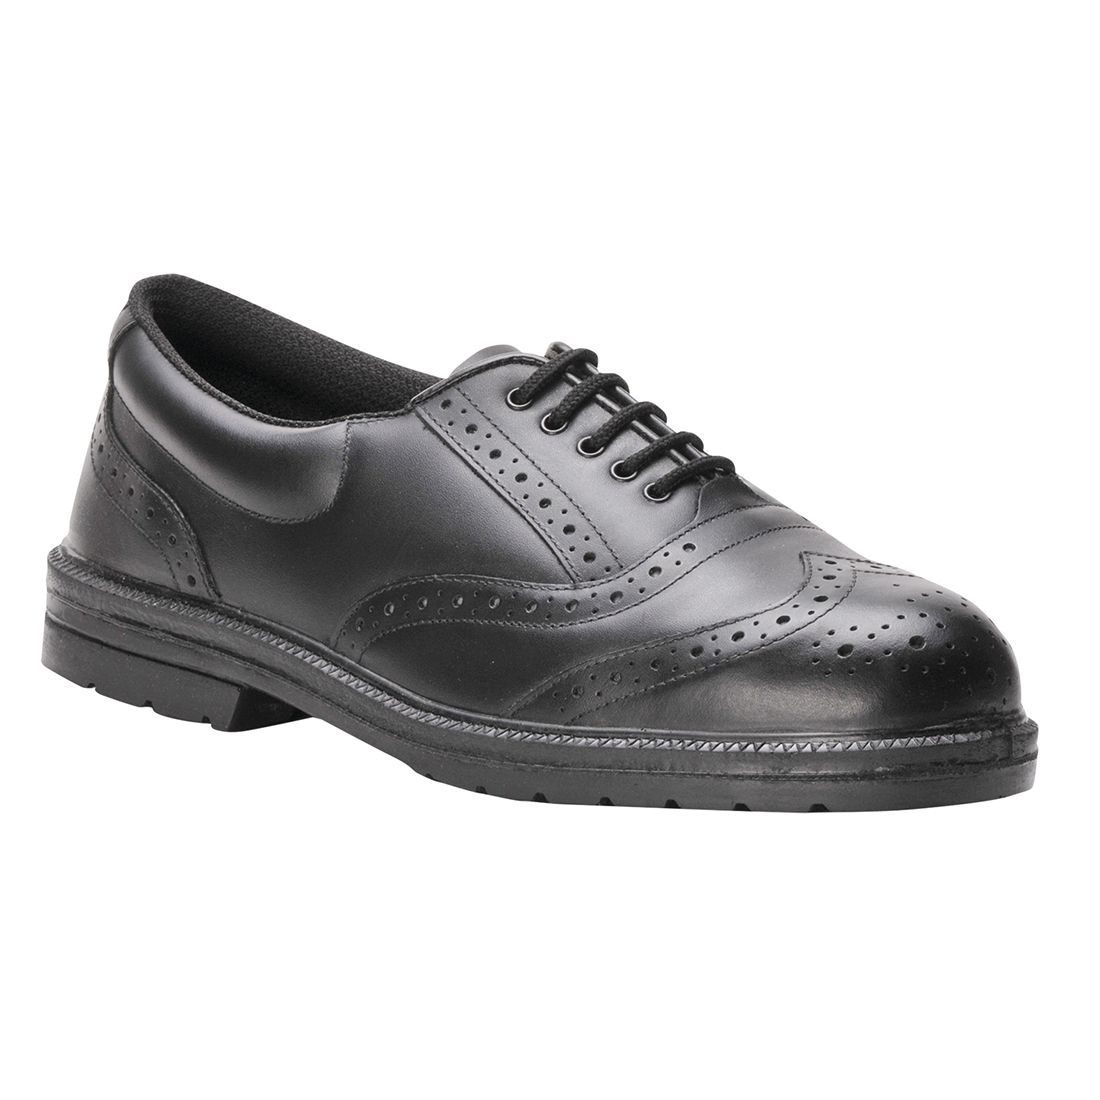 FW46/B STEELITE BROGUE BLACK S1P